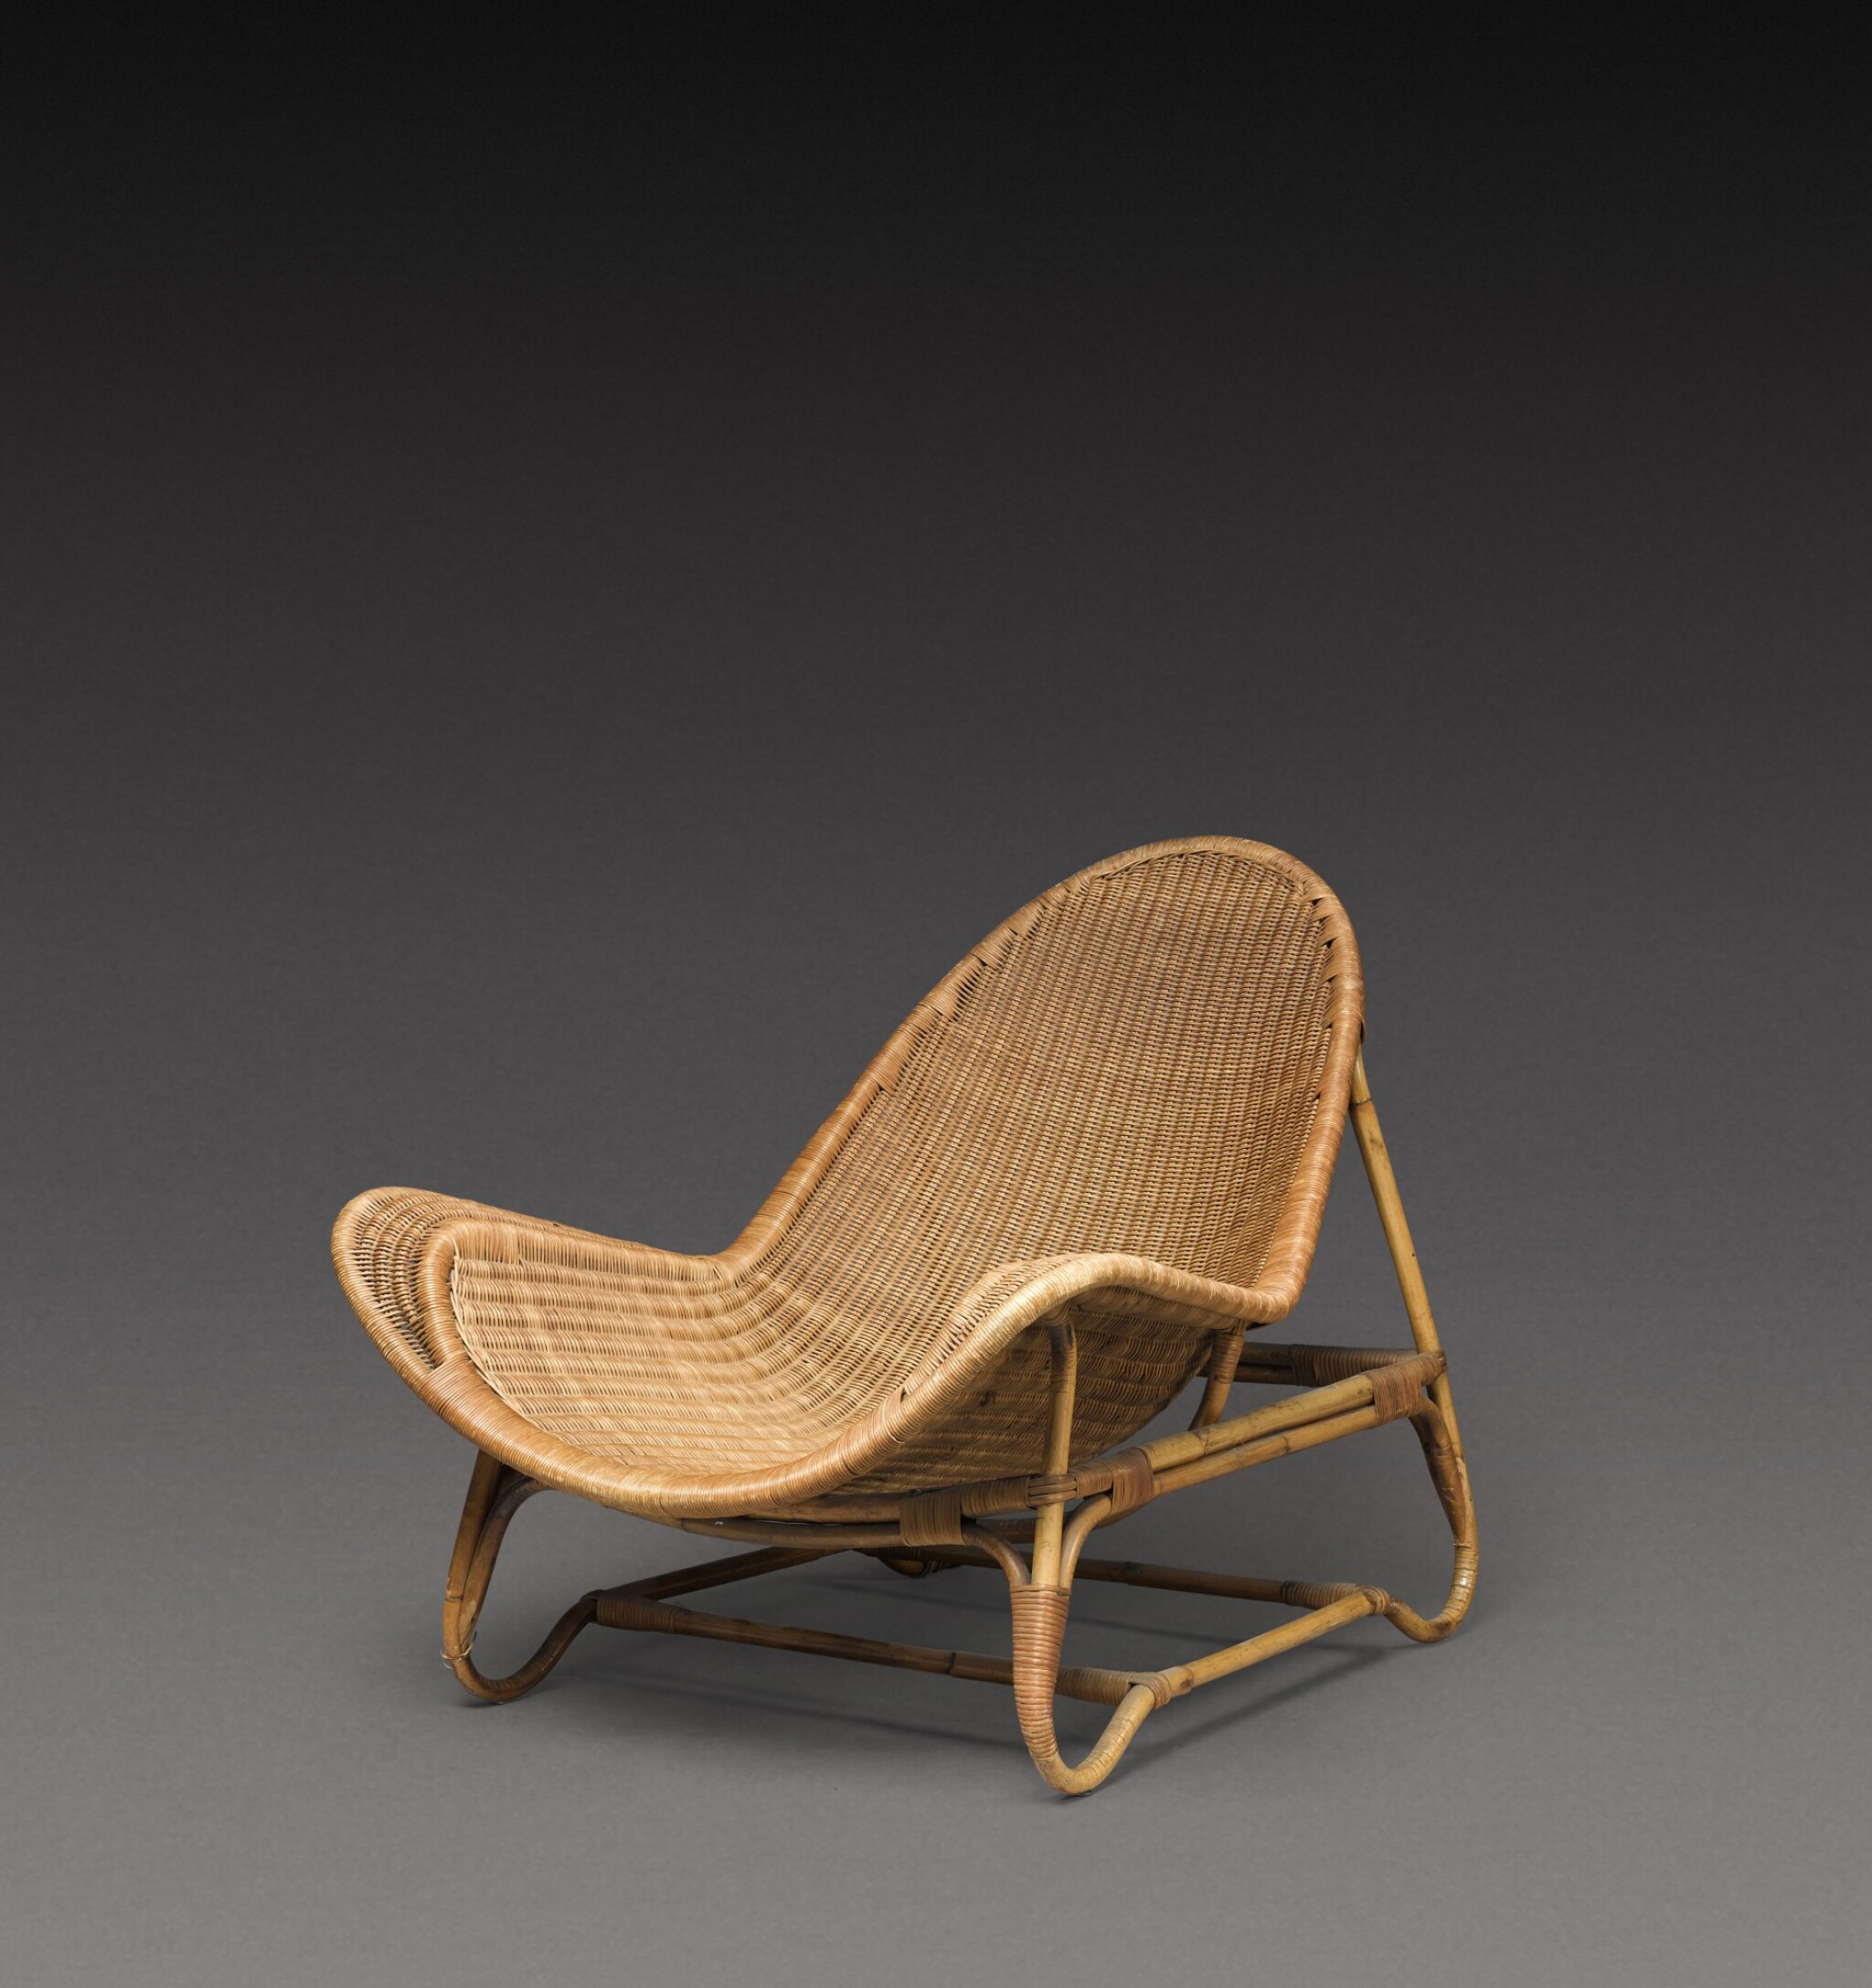 View 1 of Lot 187. Lounge Chair.